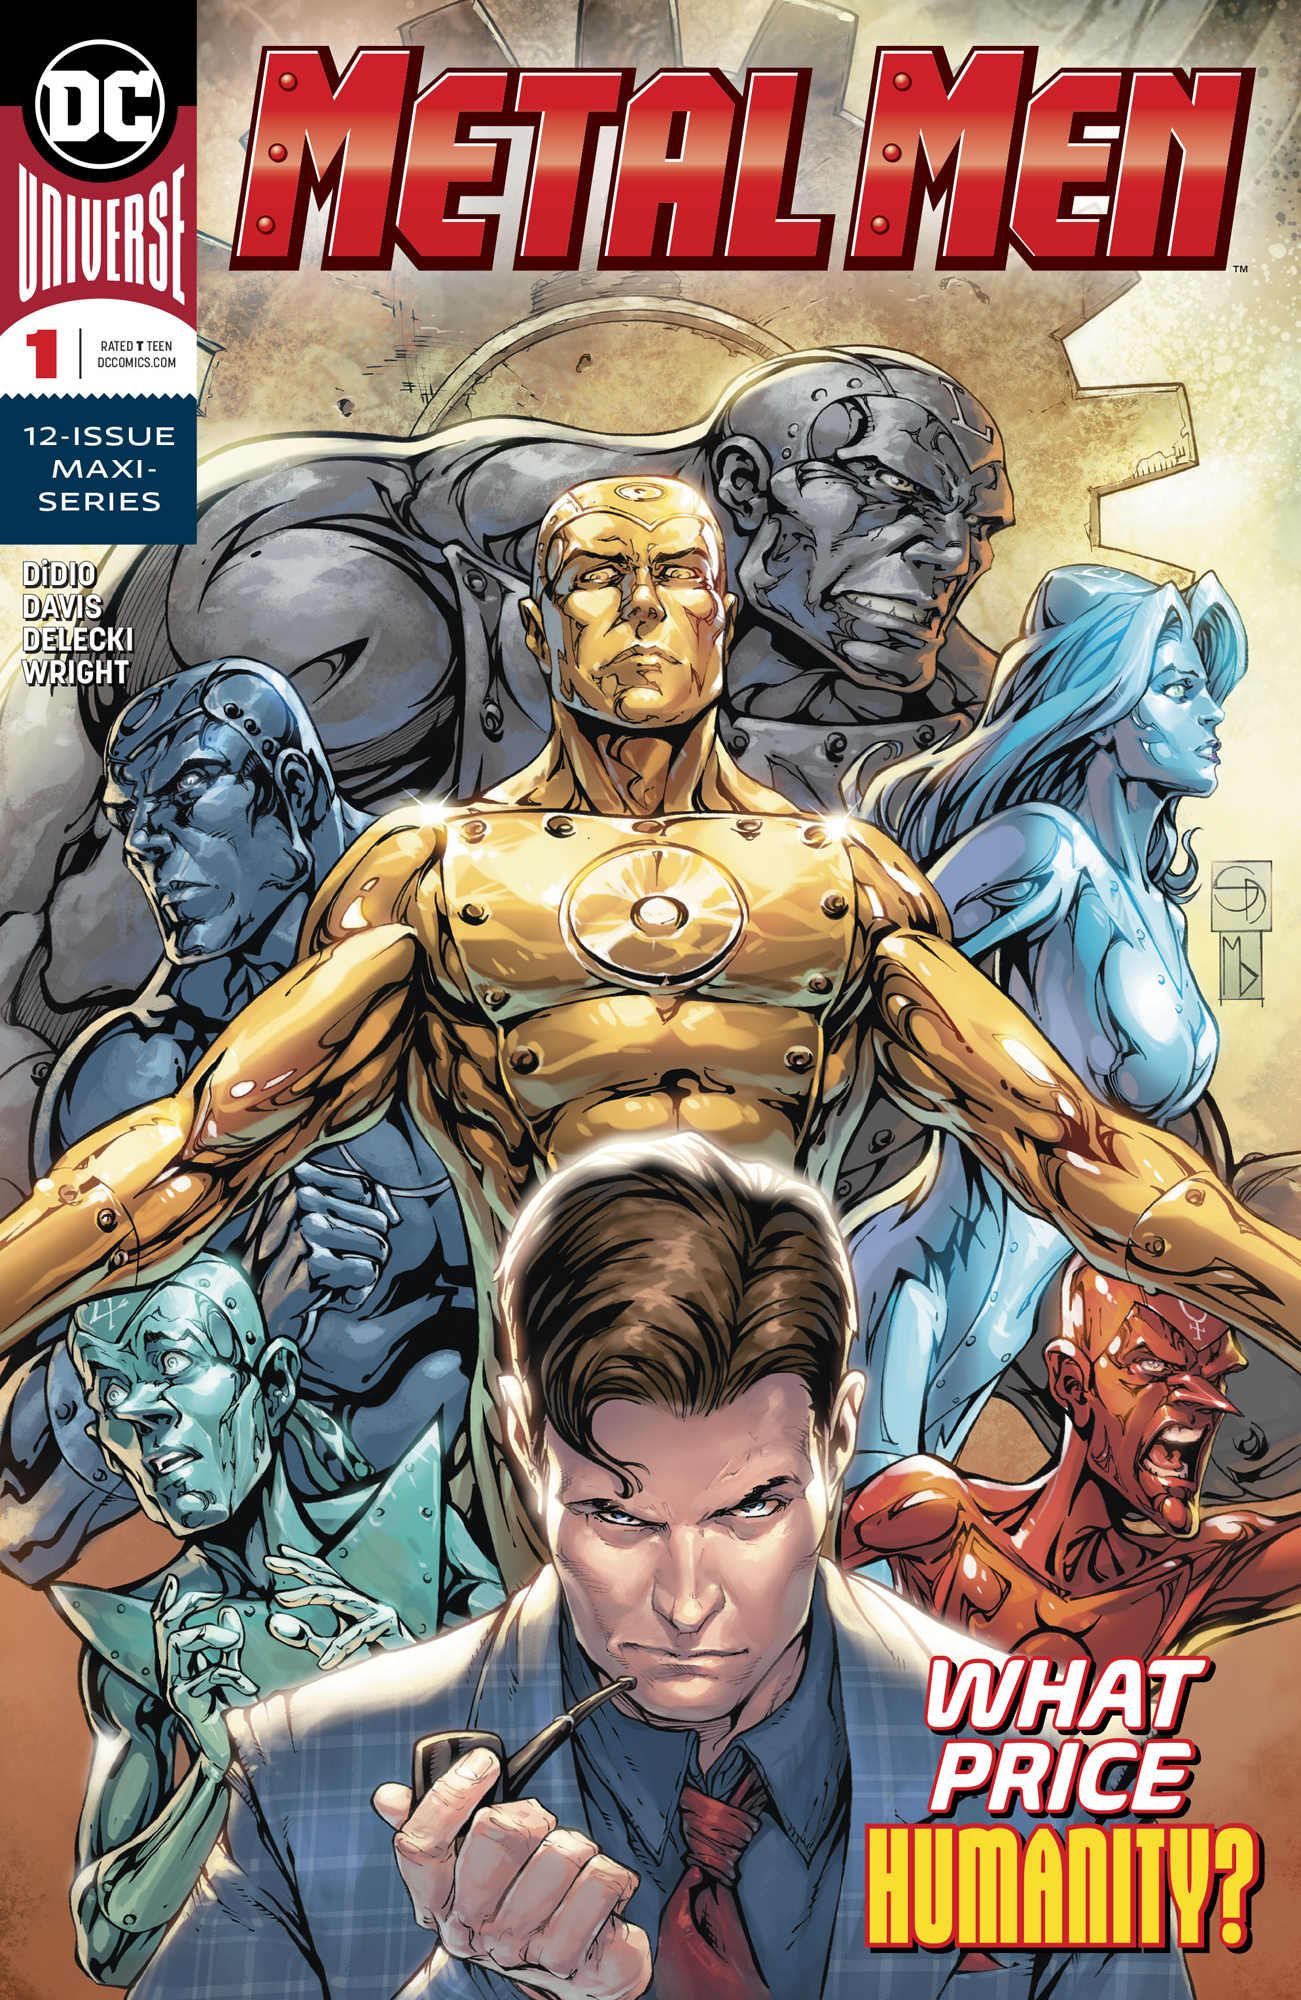 METAL MEN #1 (OF 12)